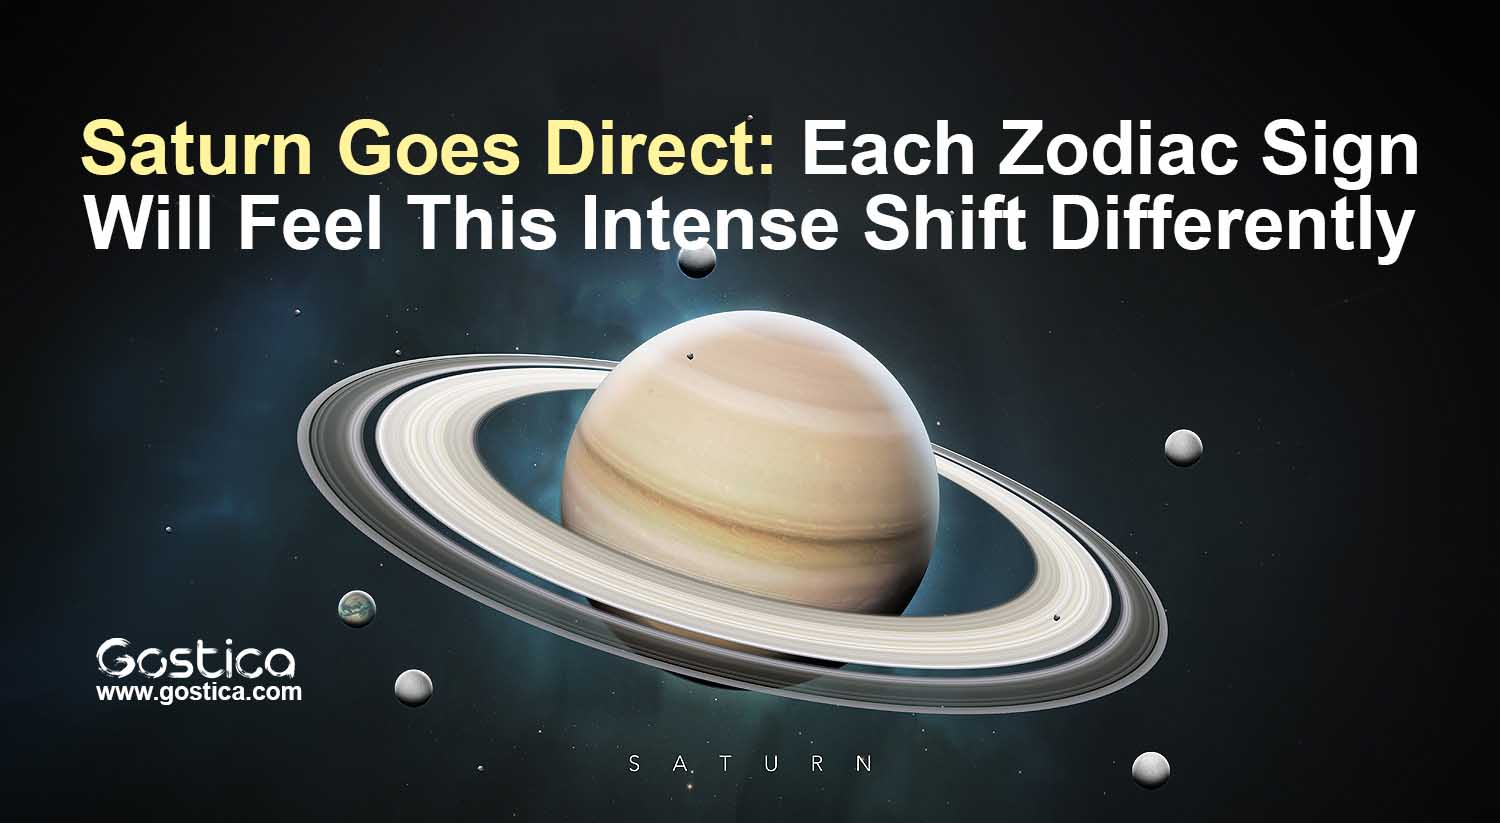 Saturn-Goes-Direct-Each-Zodiac-Sign-Will-Feel-This-Intense-Shift-Differently.jpg